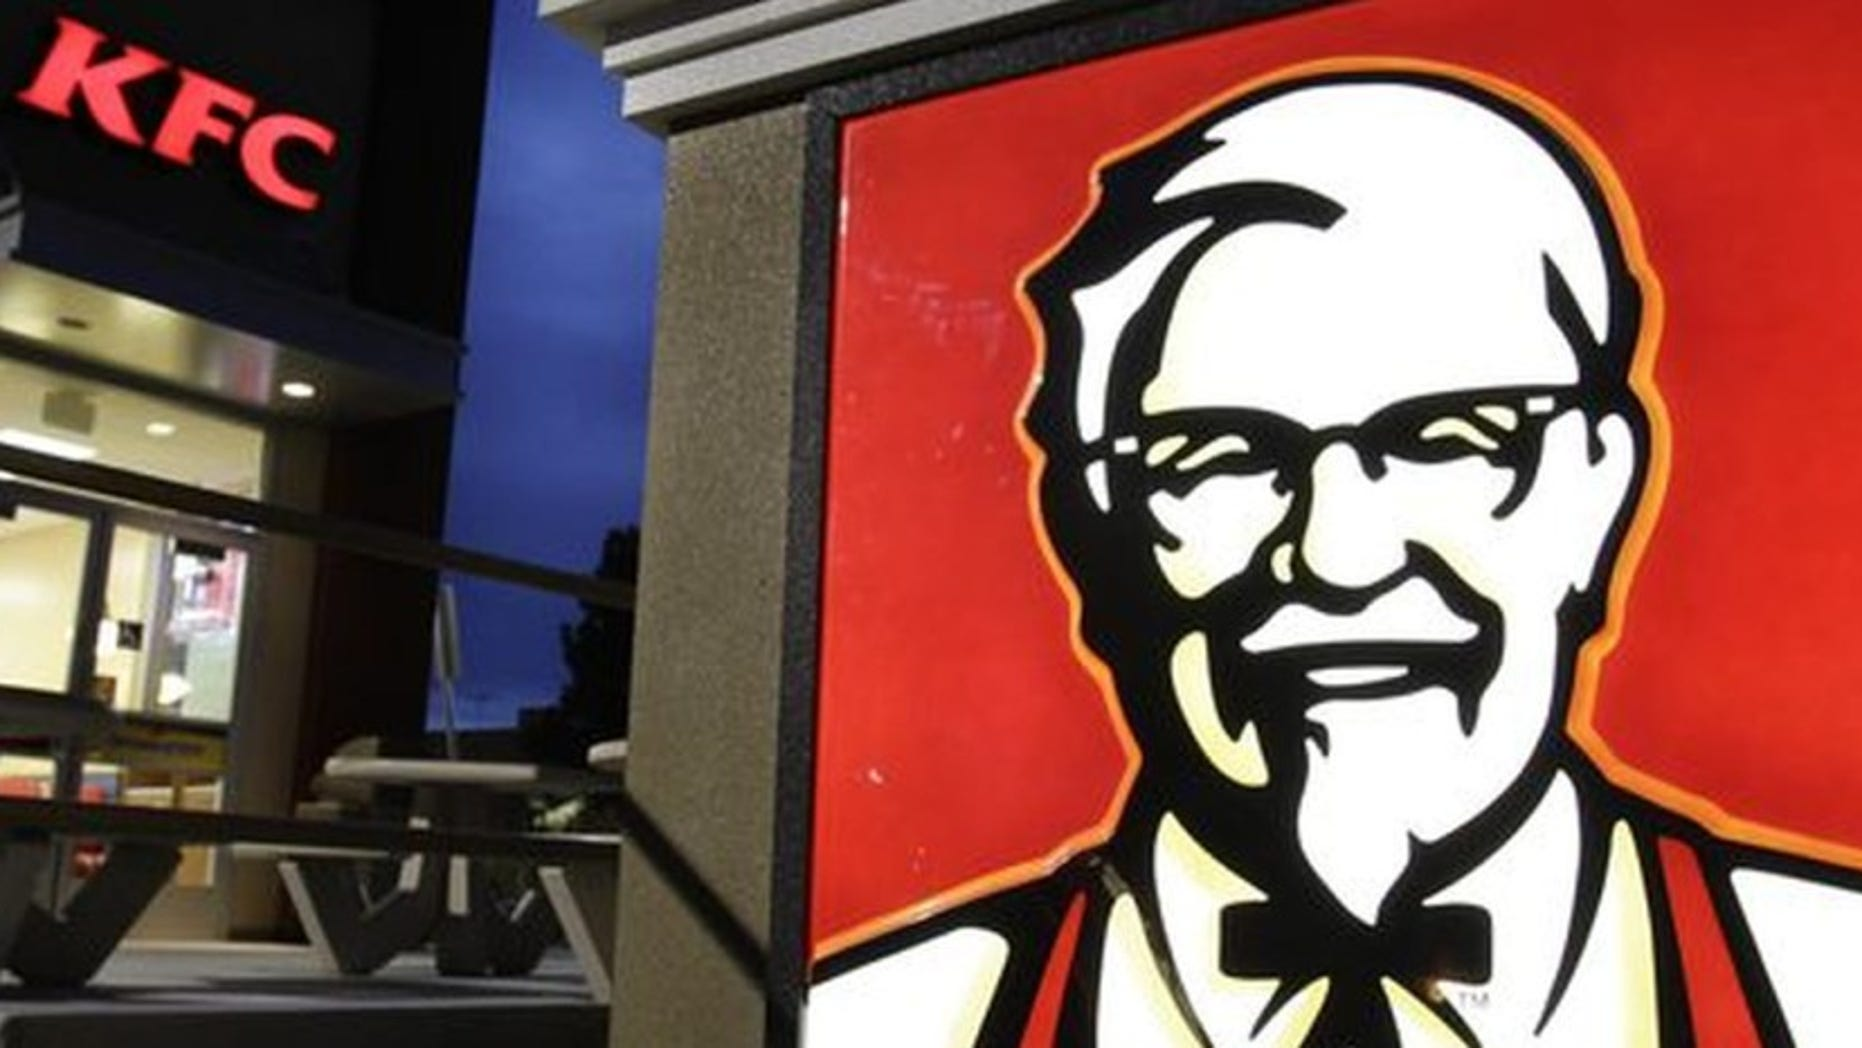 A group of Canadian friends drove a long way for authentic Kentucky Fried Chicken.